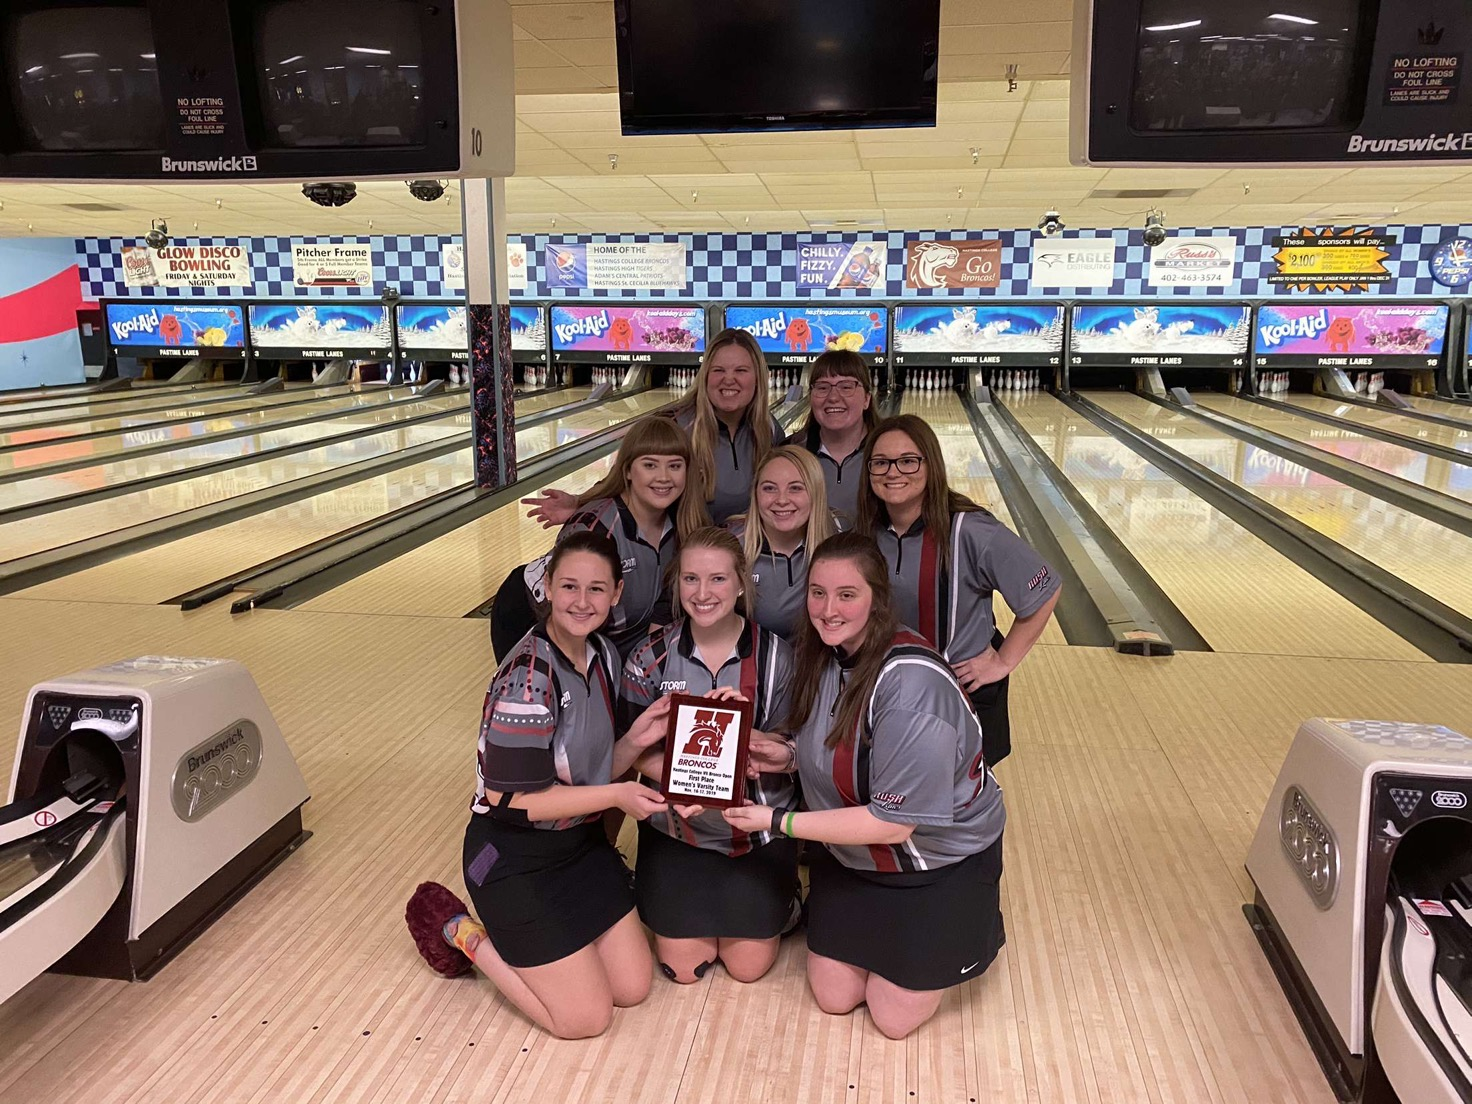 women's bowling team with plaque